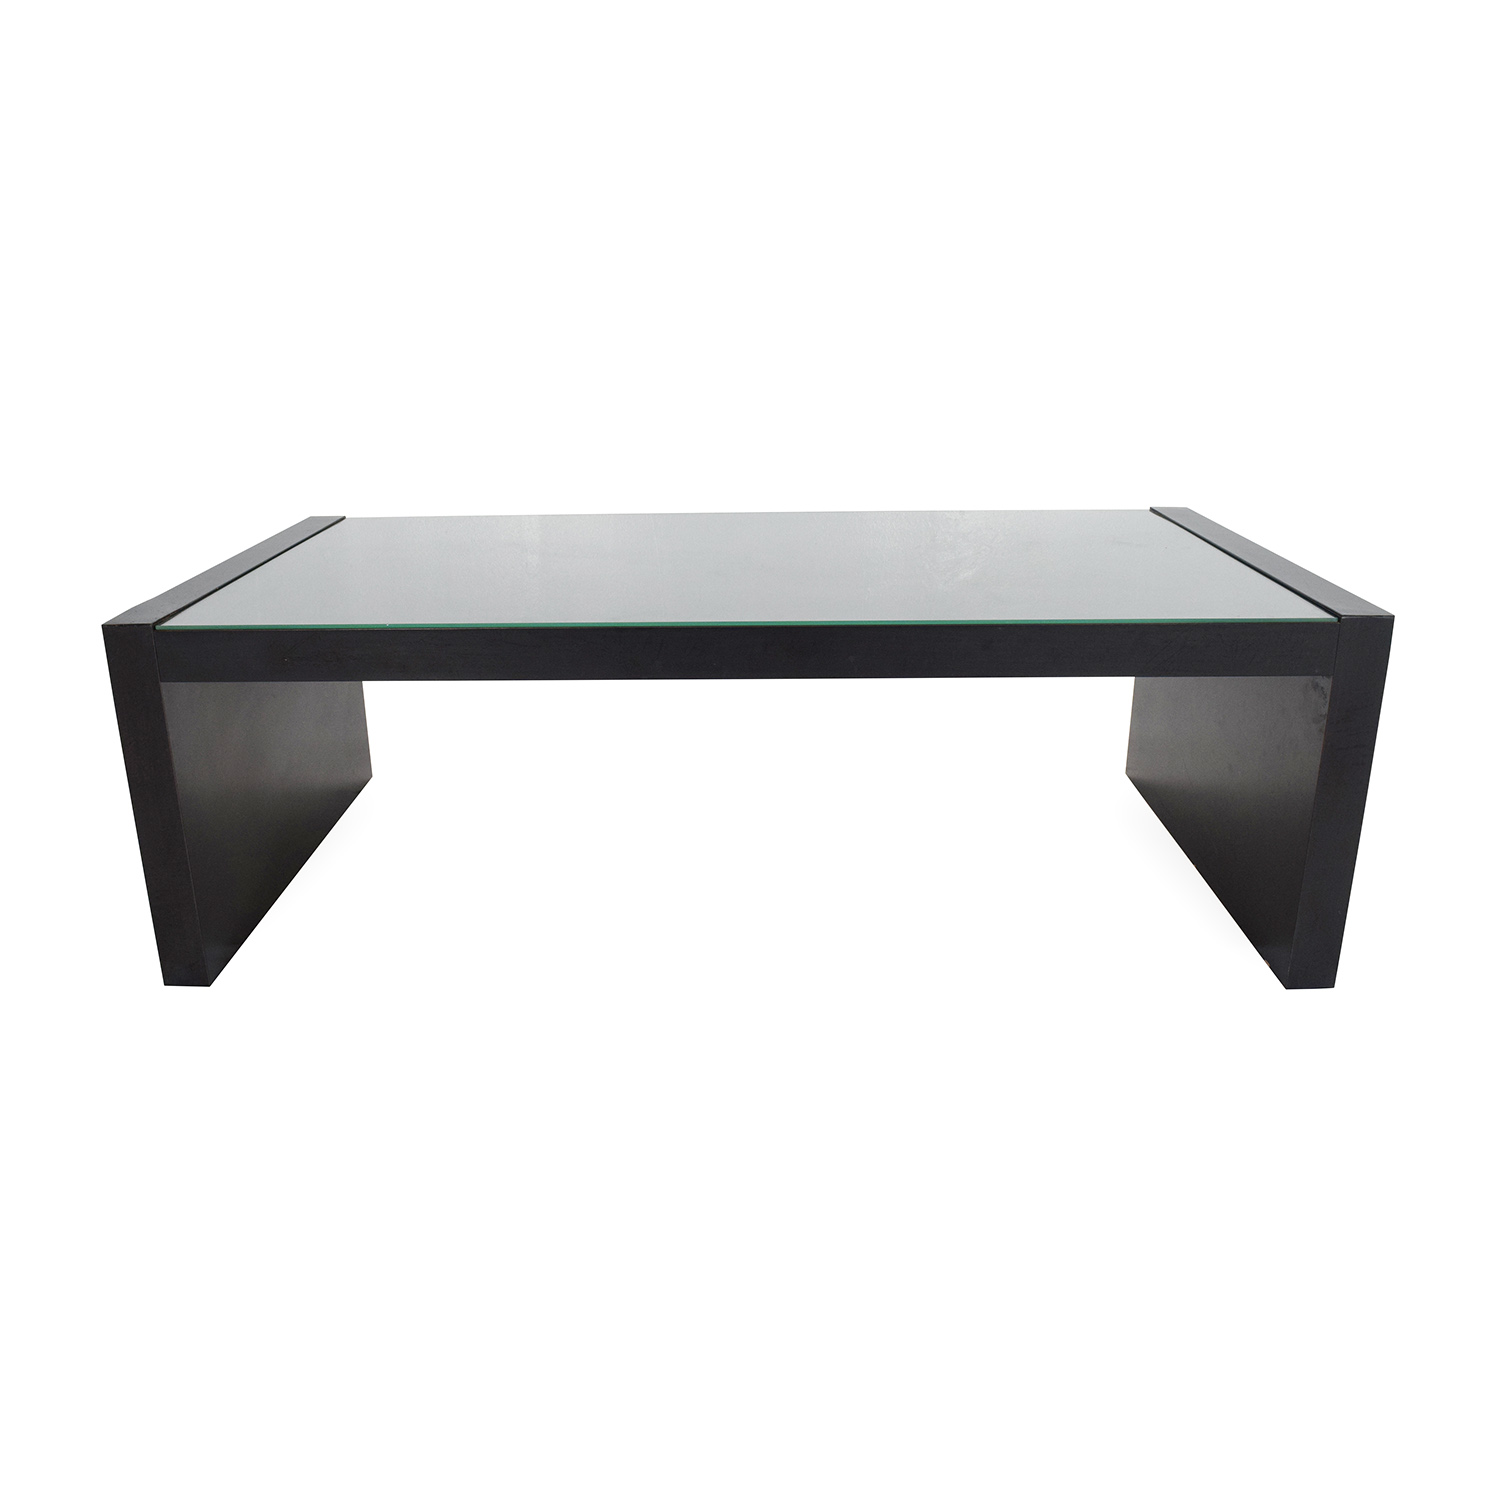 Ikea Expedit Coffee Table On